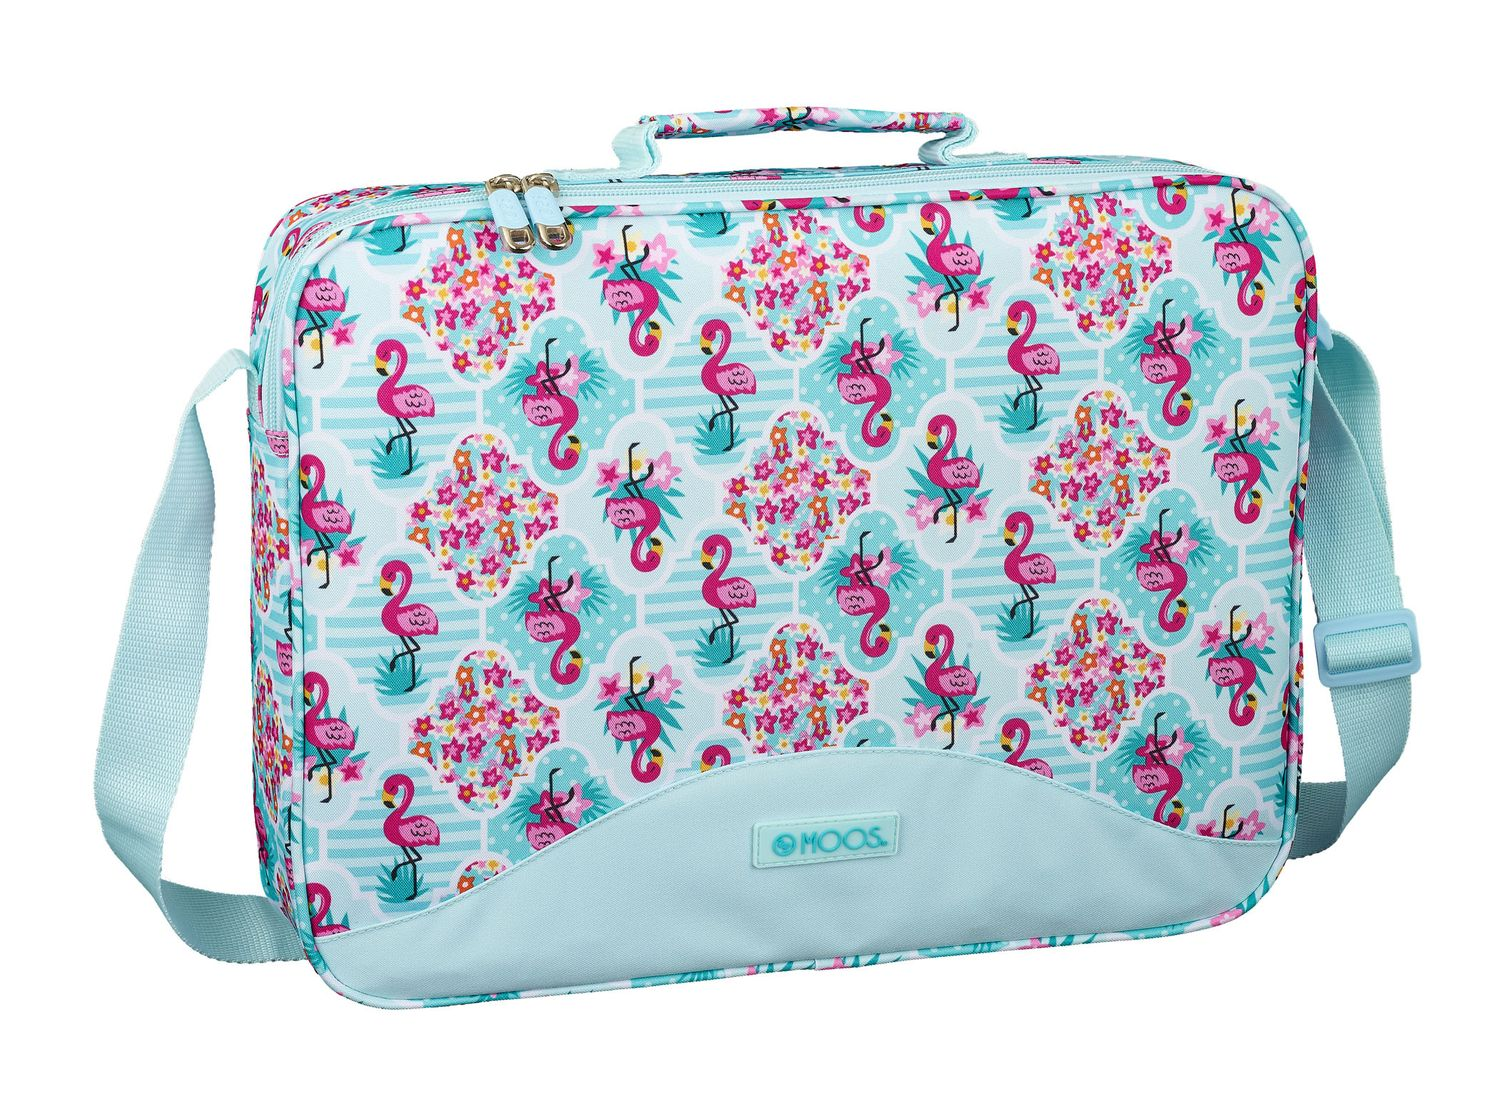 MOOS Flamingo Turquoise Briefcase Shoulder Bag 38cm – image 1